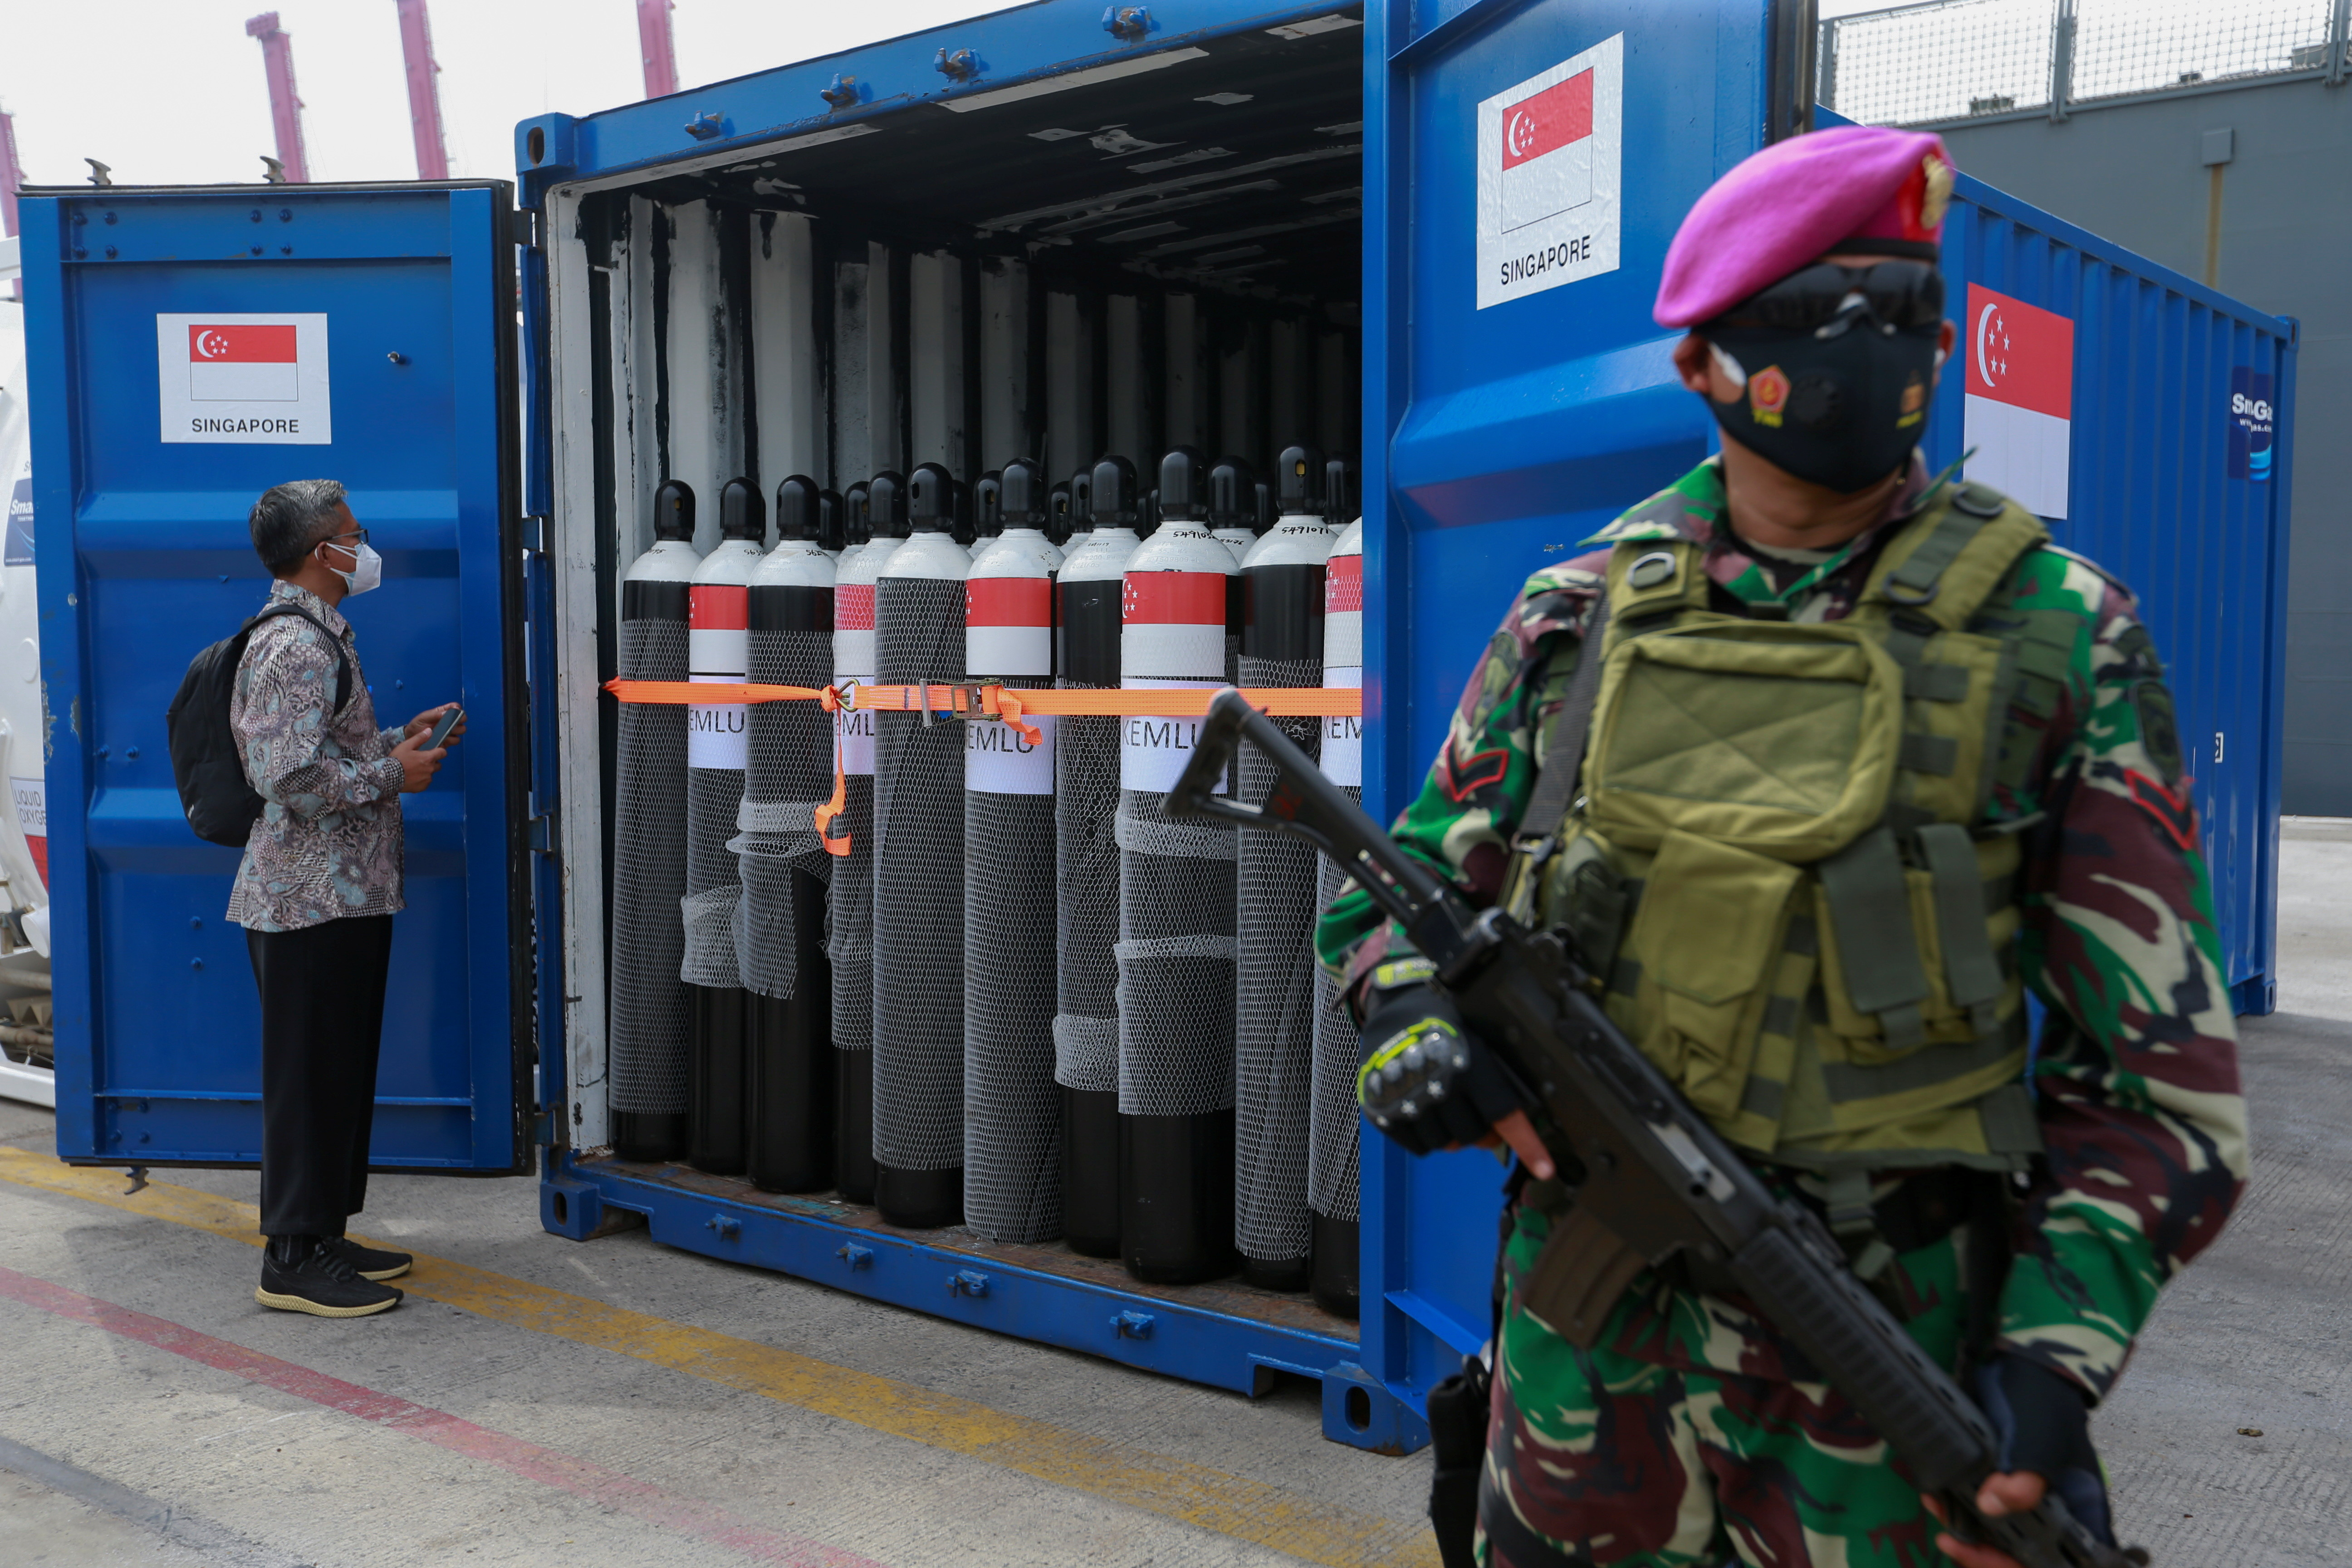 A Directorate General of Customs and Excise officer stands near an oxygen cylinder, while an Indonesian military official guards the medical supplies sent by the Singapore government amid a surge of coronavirus disease (COVID-19) cases in Jakarta, Indonesia, July 14, 2021. REUTERS/Ajeng Dinar Ulfiana - RC26KO94TVR4